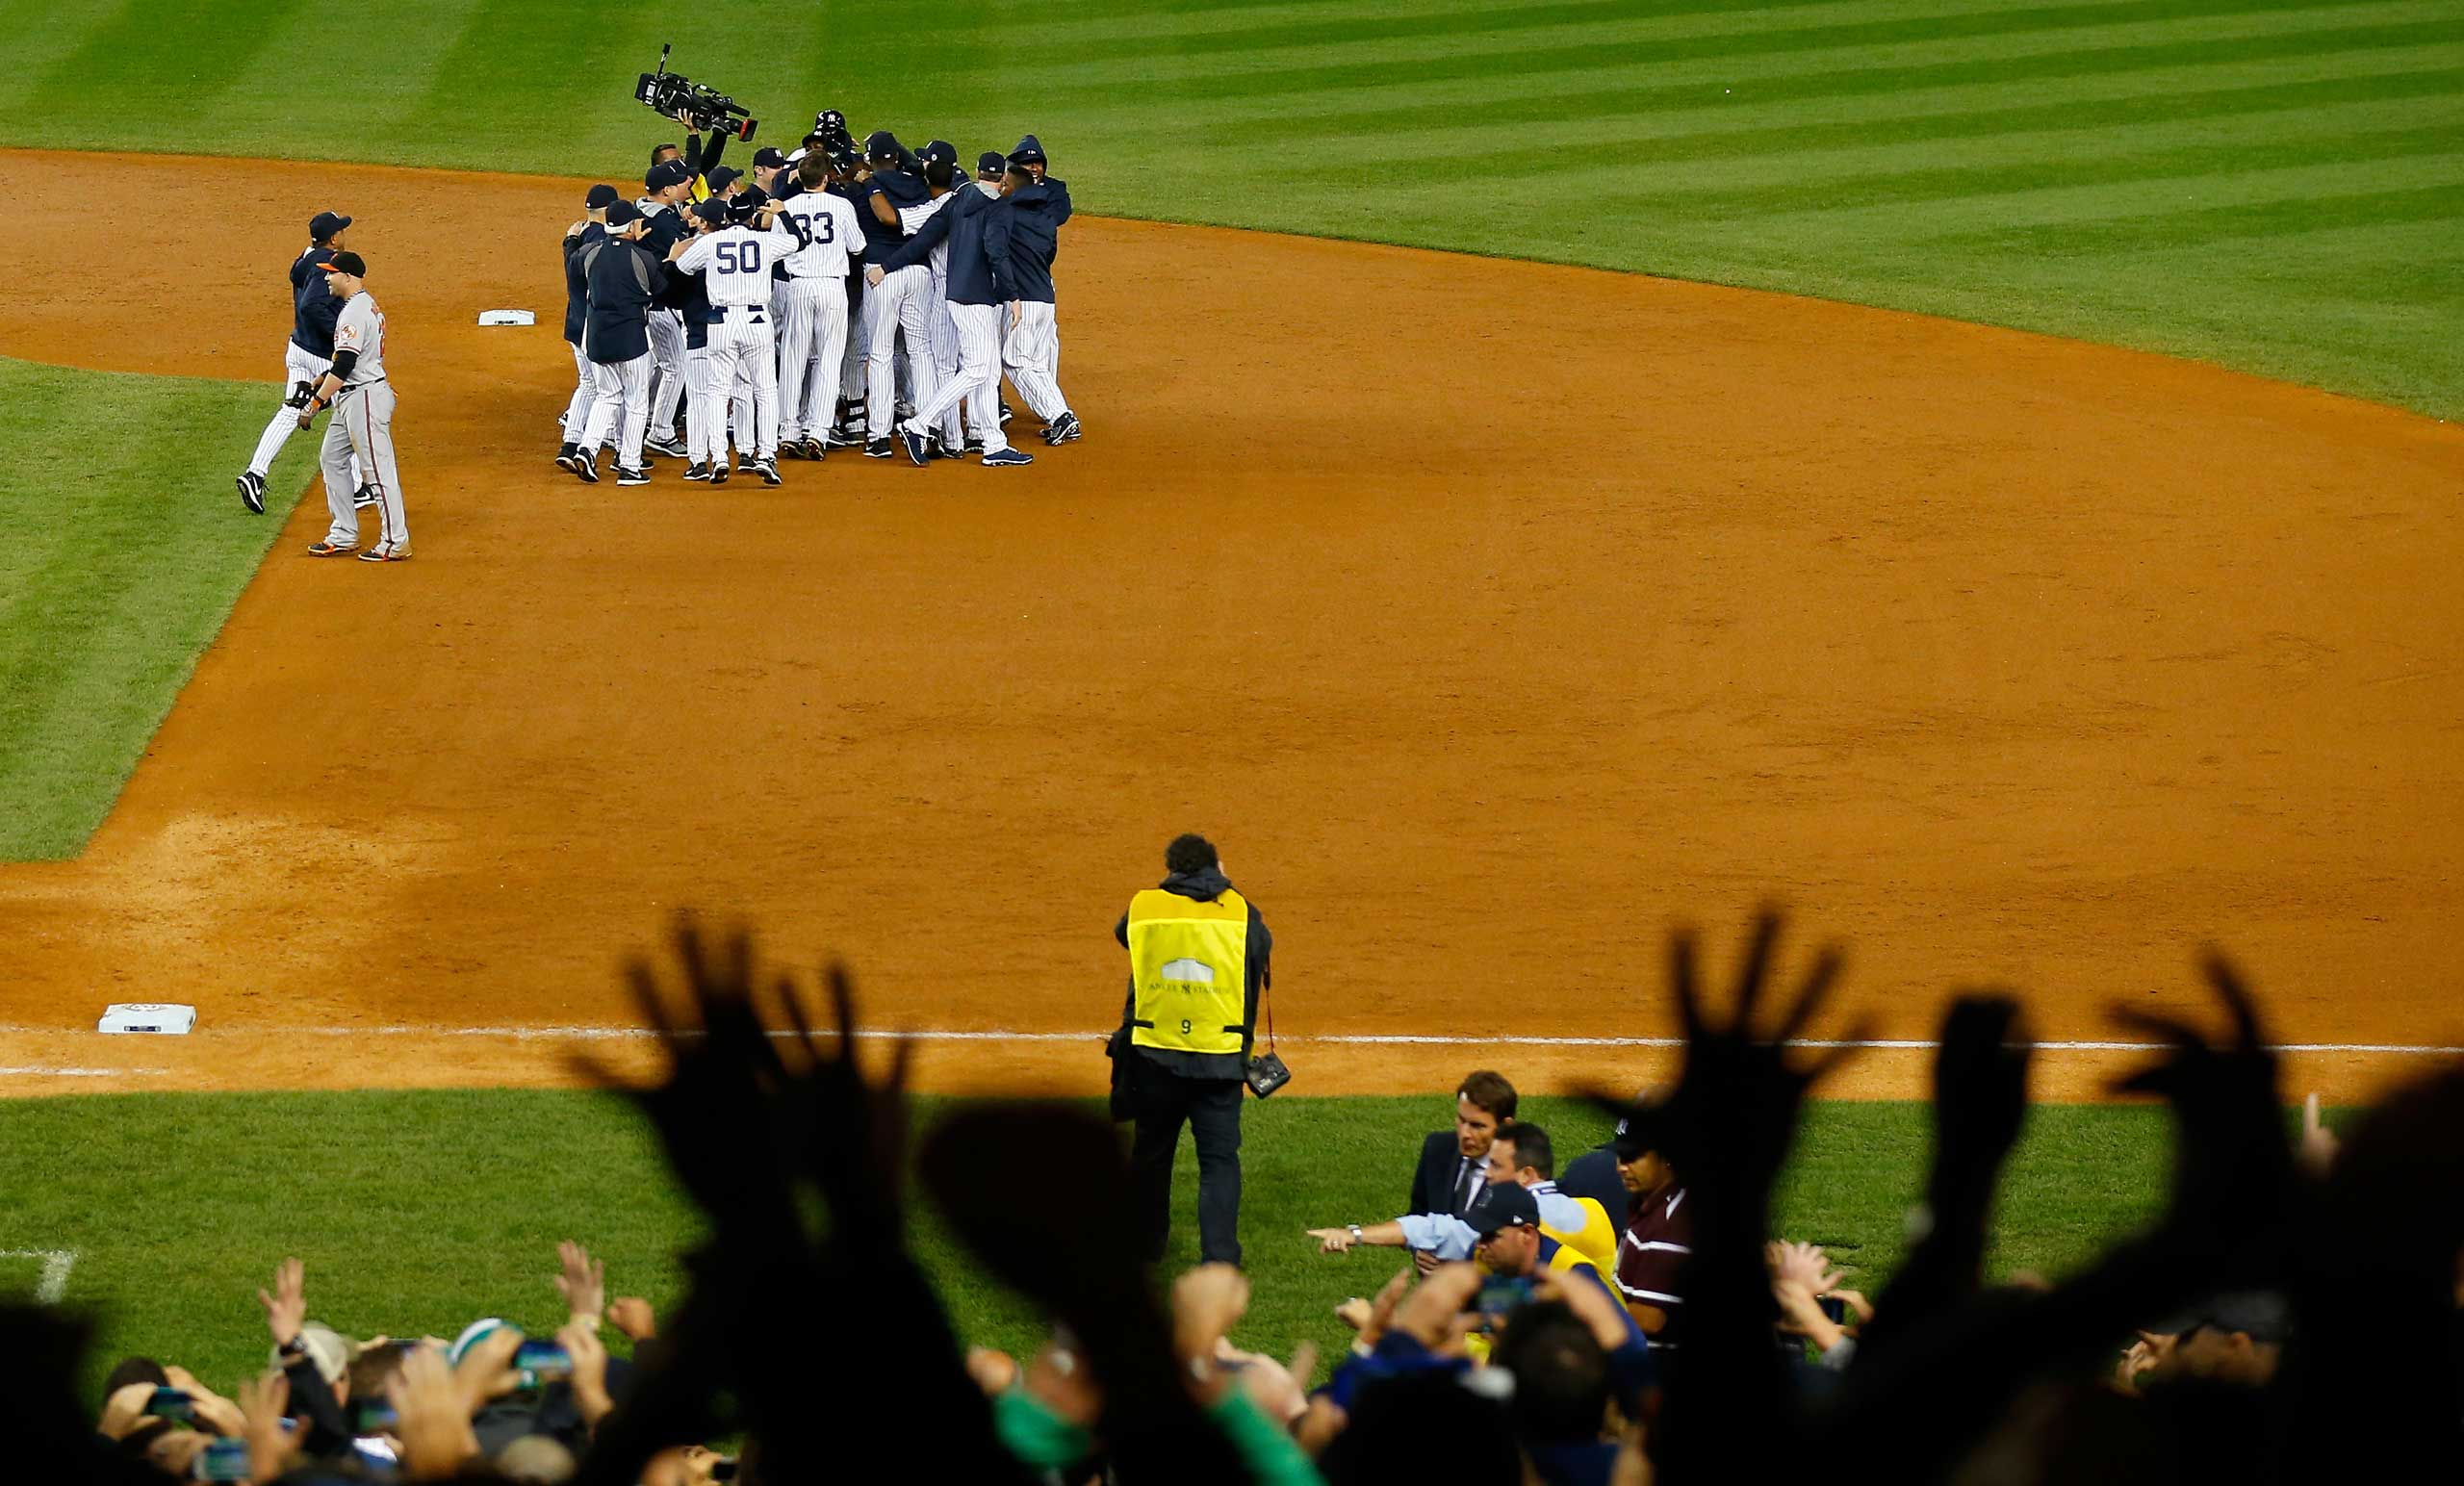 Derek Jeter celebrates with his team after a game winning RBI hit in the ninth inning against the Baltimore Orioles in his last game ever at Yankee Stadium on Sept. 25, 2014.